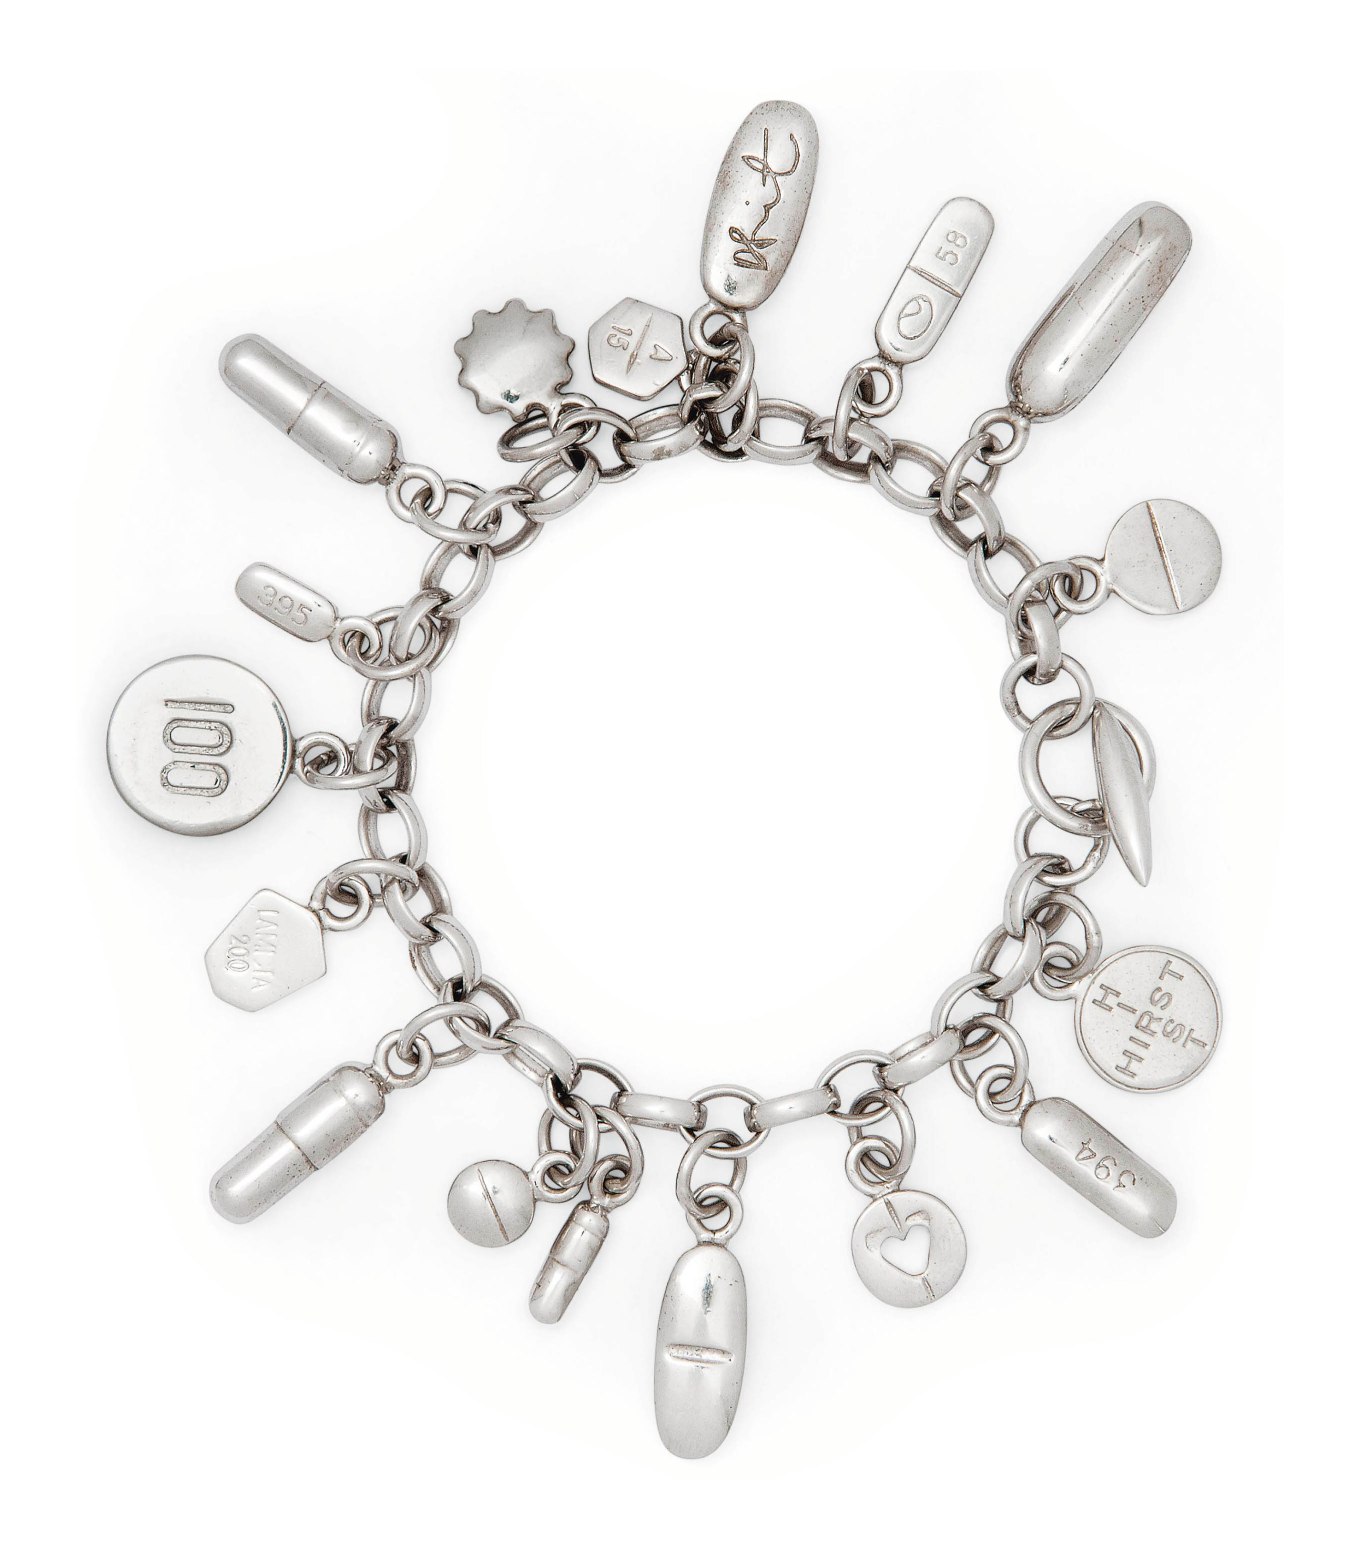 Damien Hirst silver Pharmaceutical Pill Charm bracelet. Photo Christie's